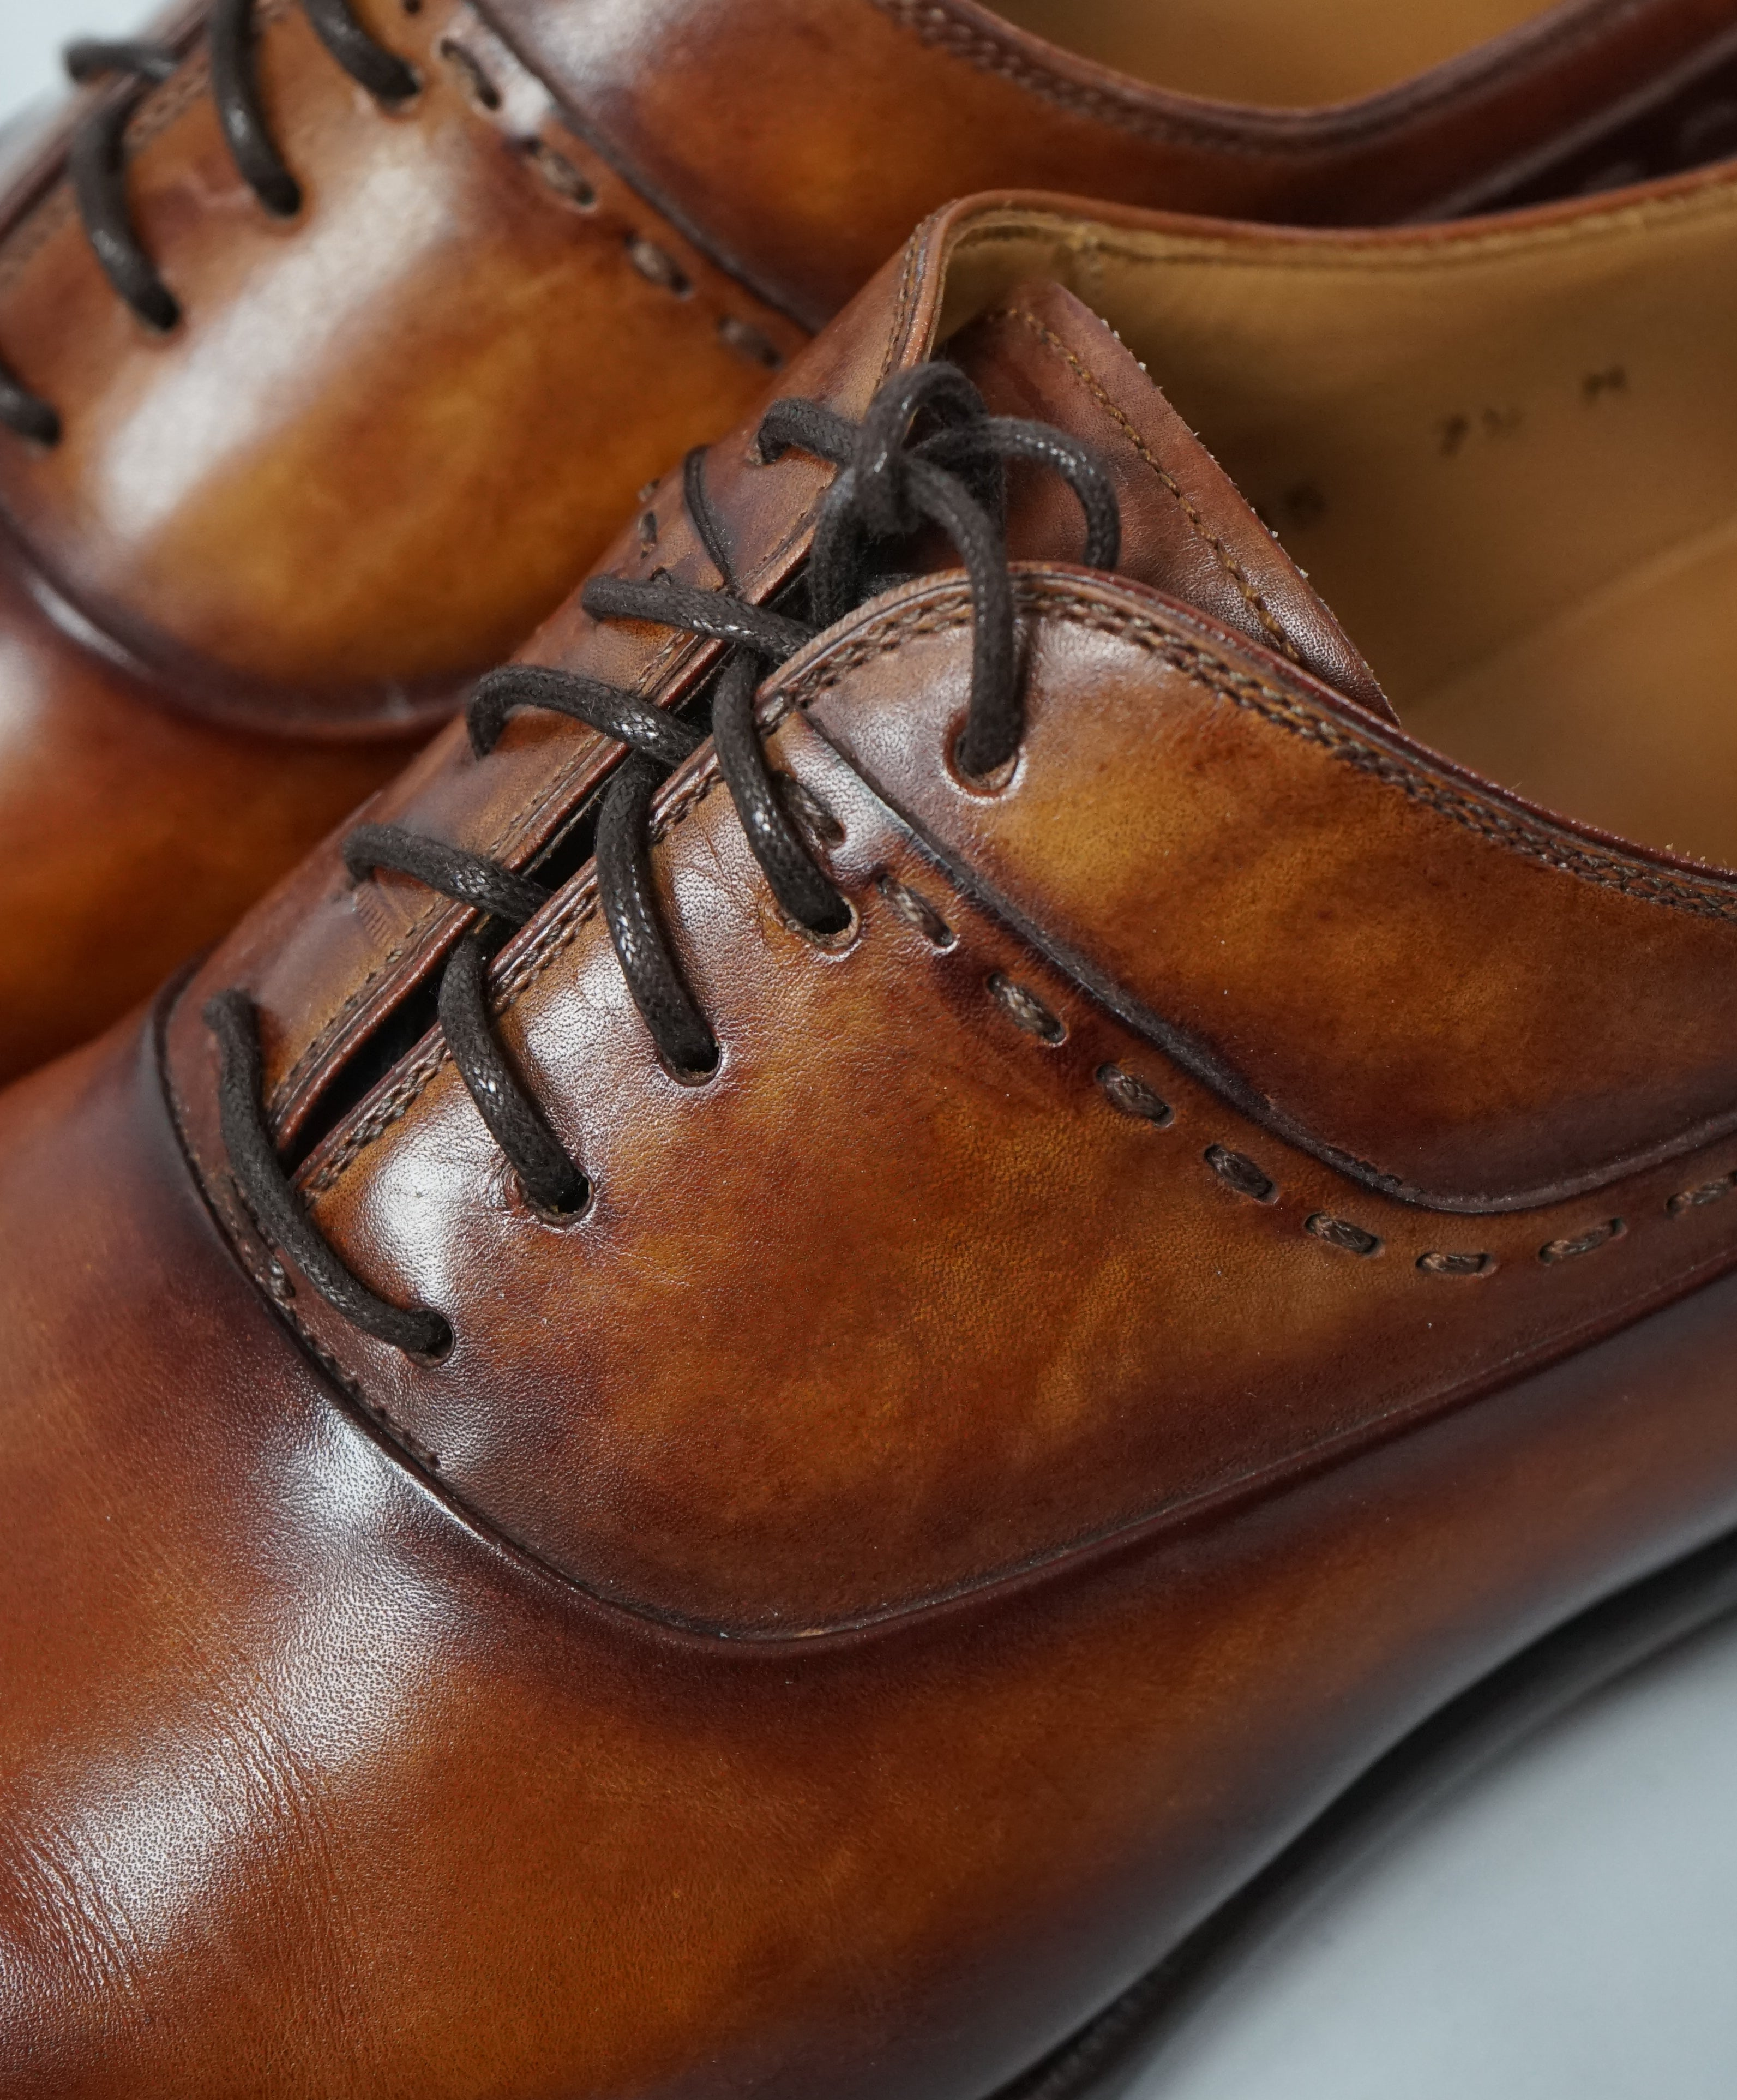 MAGNANNI - Hand Patina Oxfords In A Sleek Detailed Silhouette - 7.5